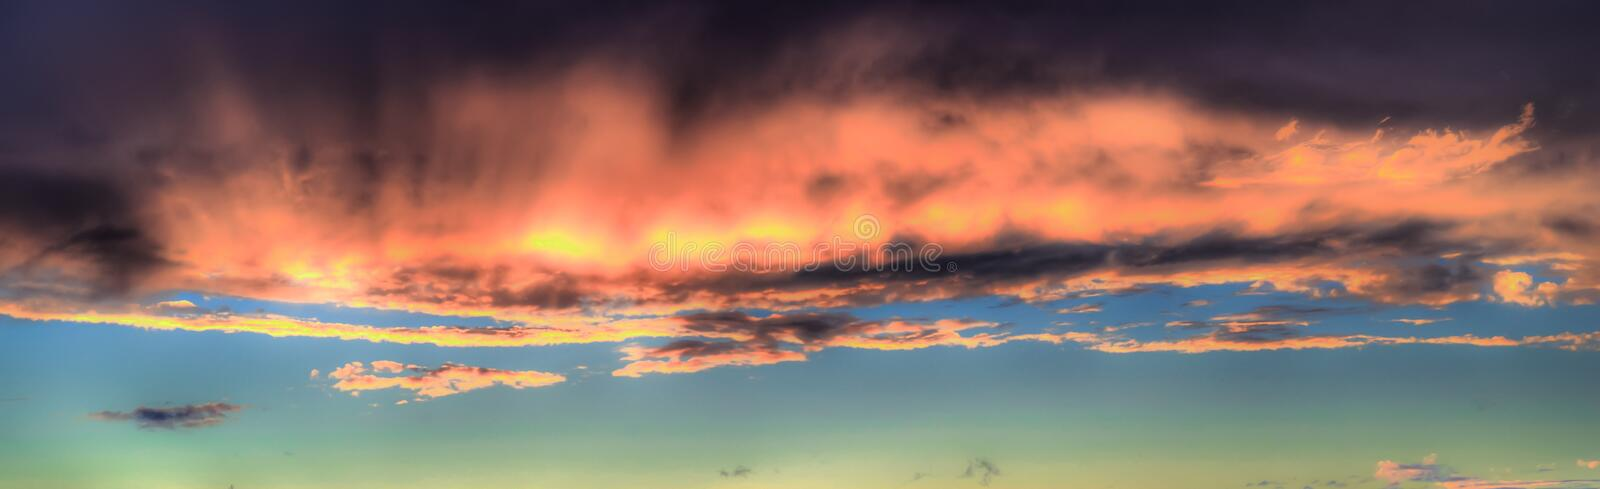 Beautiful red sky and cloud in sunset, colorful evening nature. stock images